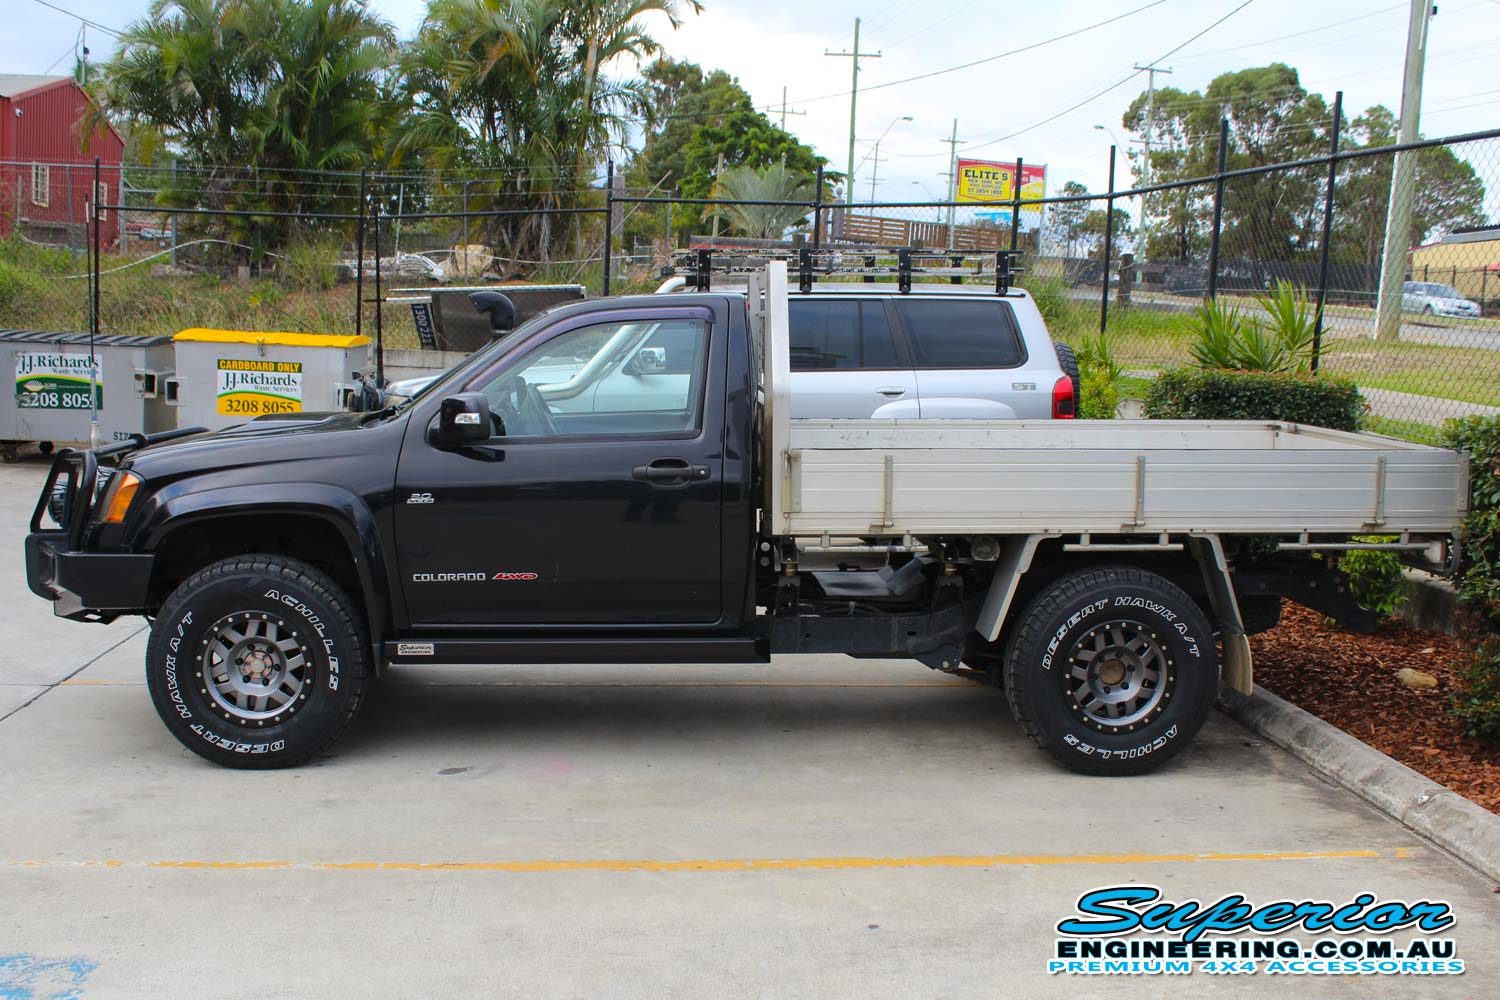 Left side view of a Black Single Cab RC Holden Colorado fitted with a 45mm Tough Dog lift kit, Superior stealth rock sliders, Ironman engine guard, Ironman monster winch, led spot lights and more